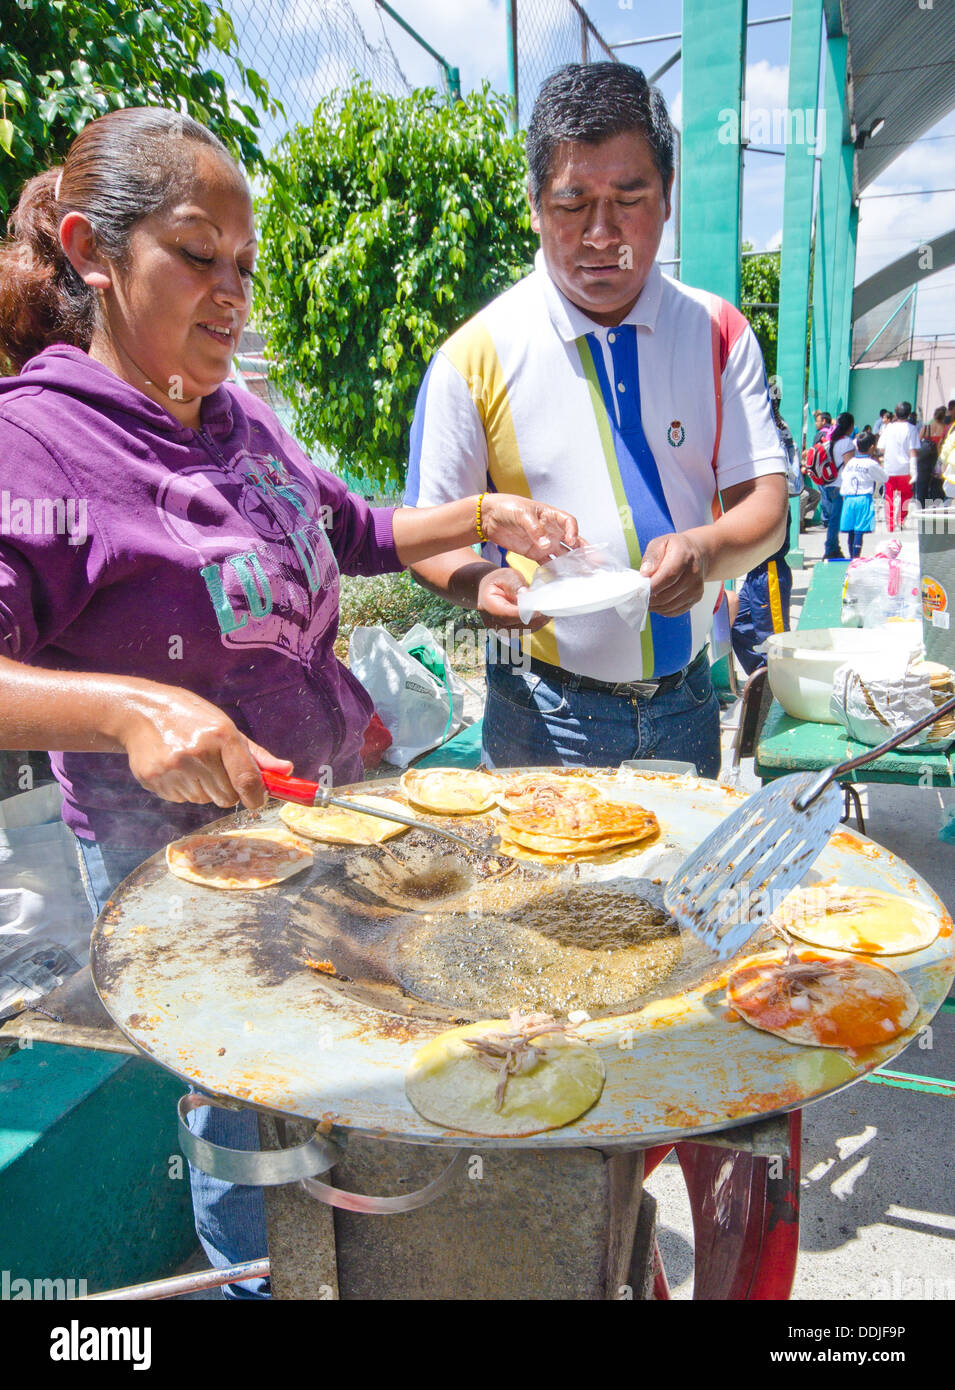 Food festival in Puebla city, Mexico. A woman prepares chalupas for customers. A man is being served. - Stock Image